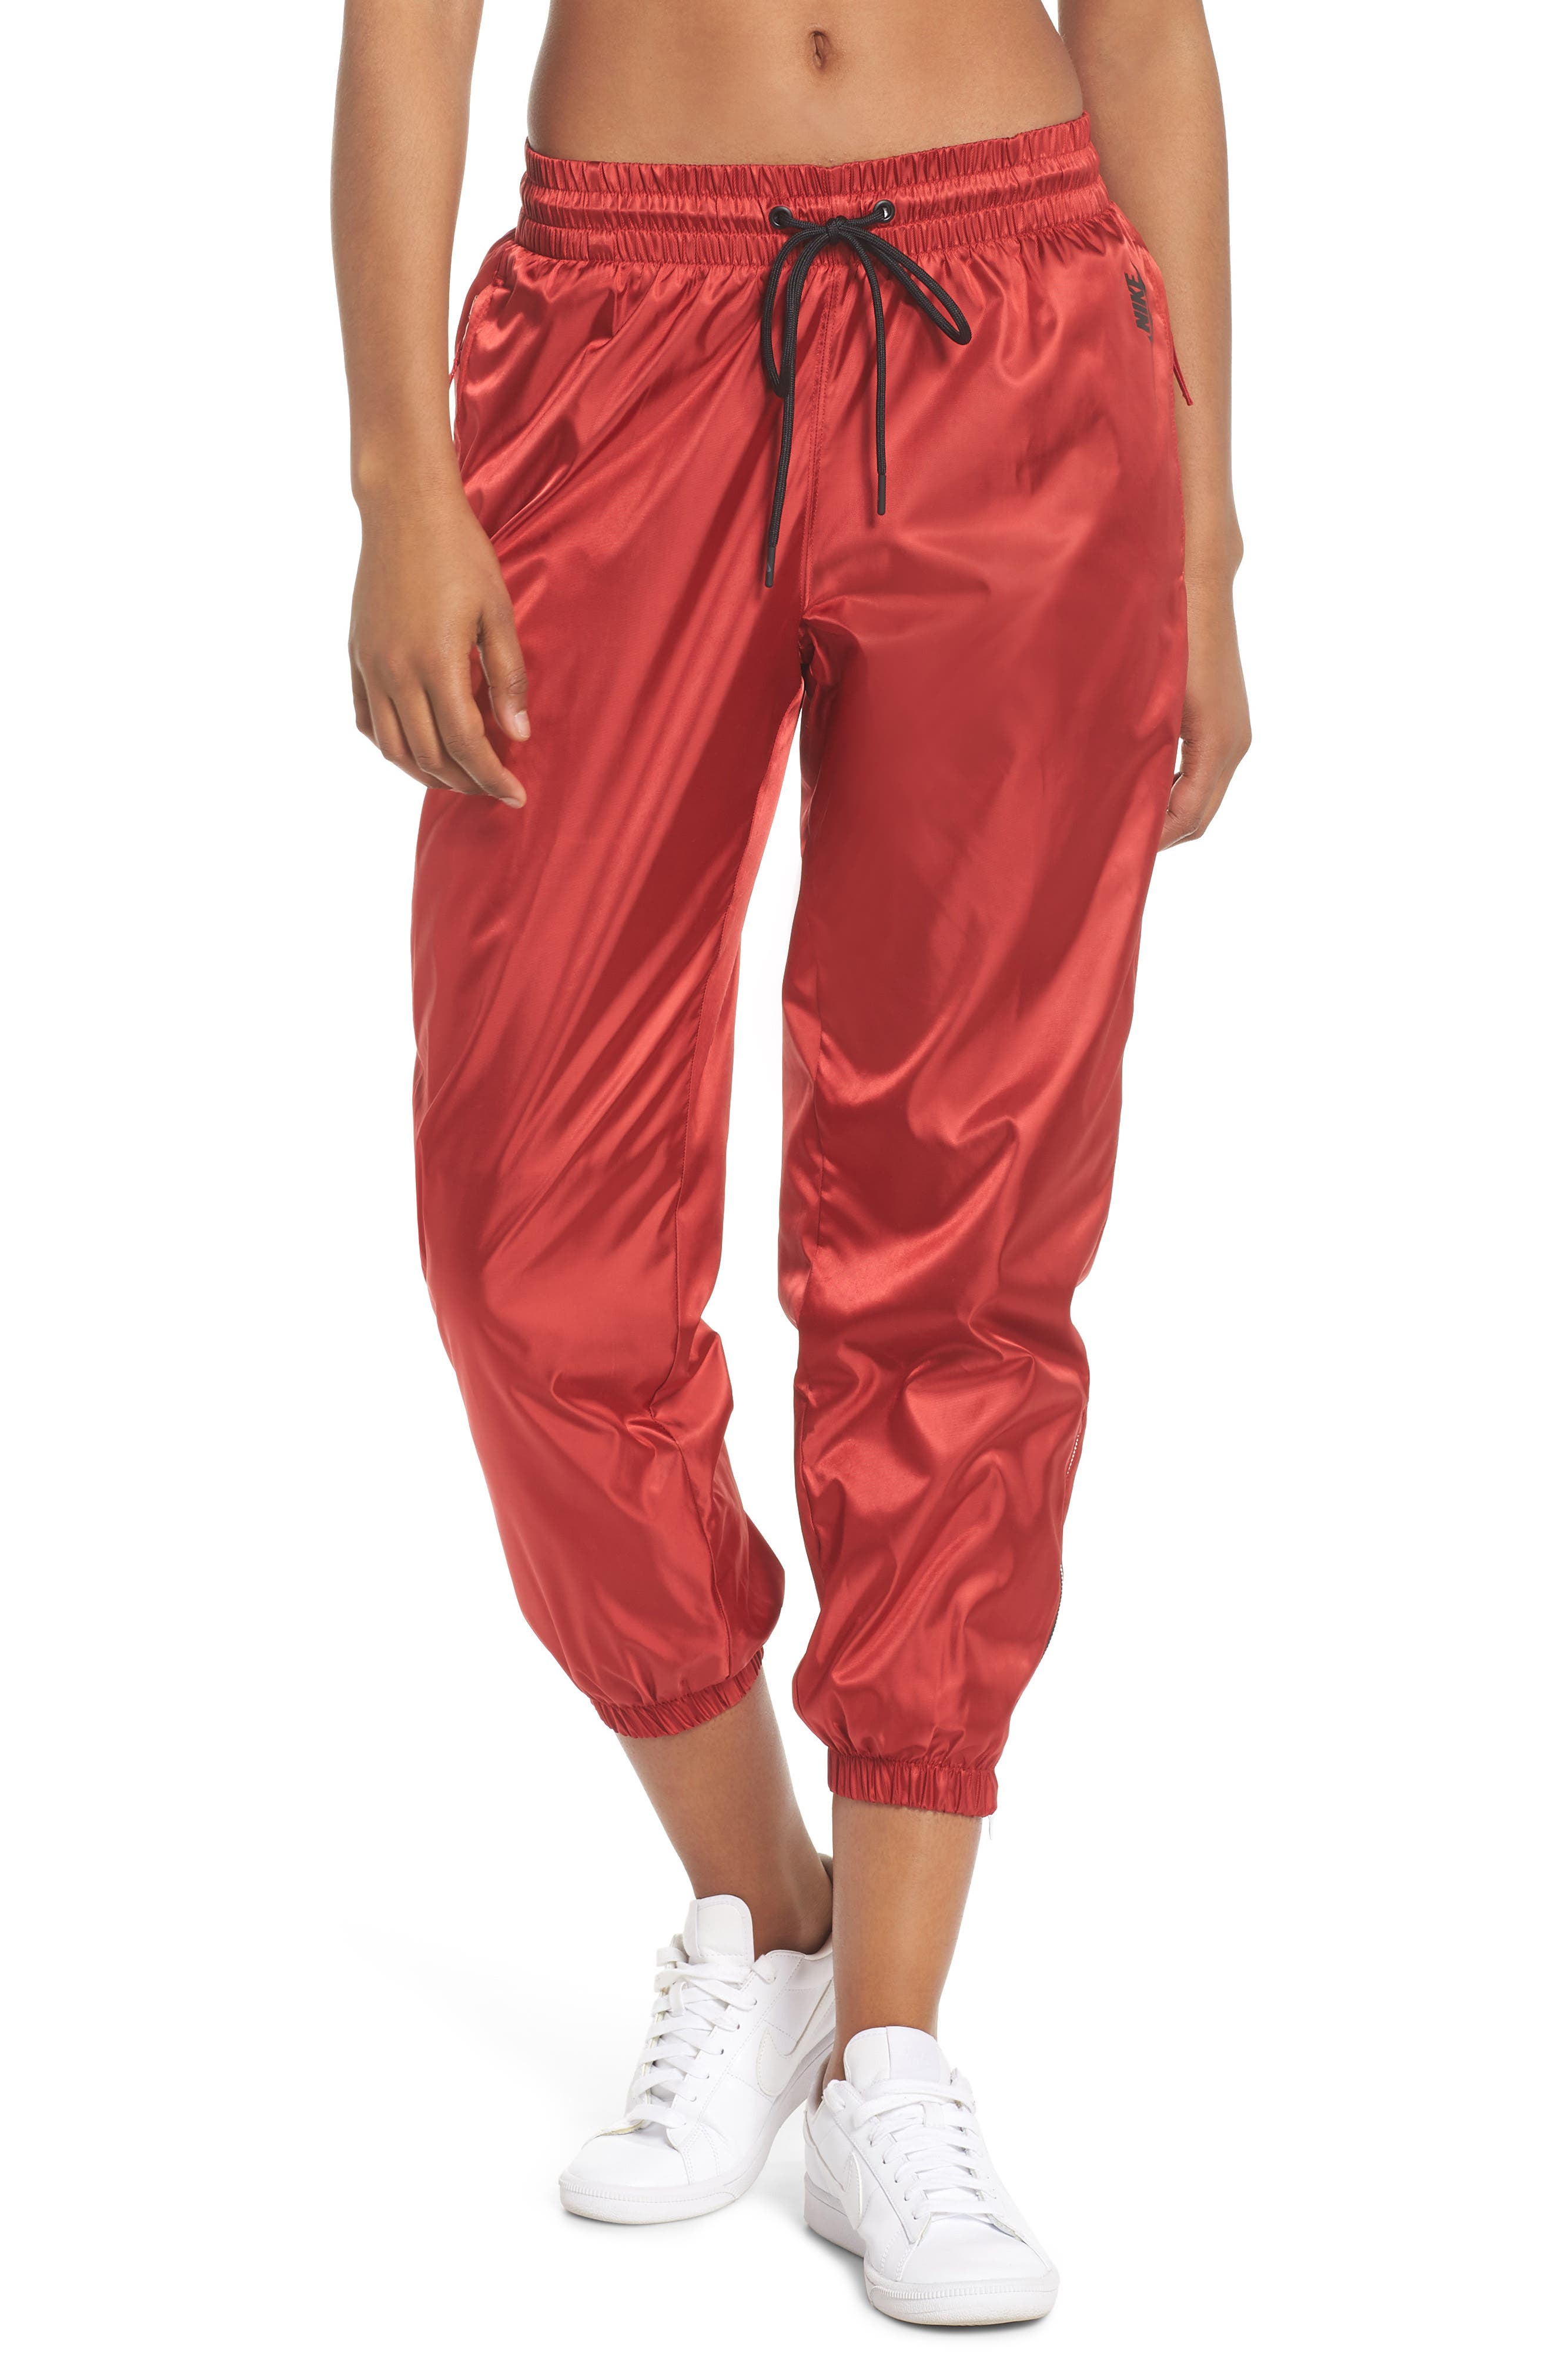 NikeLab Collection Women's Satin Track Pants,                         Main,                         color, 600